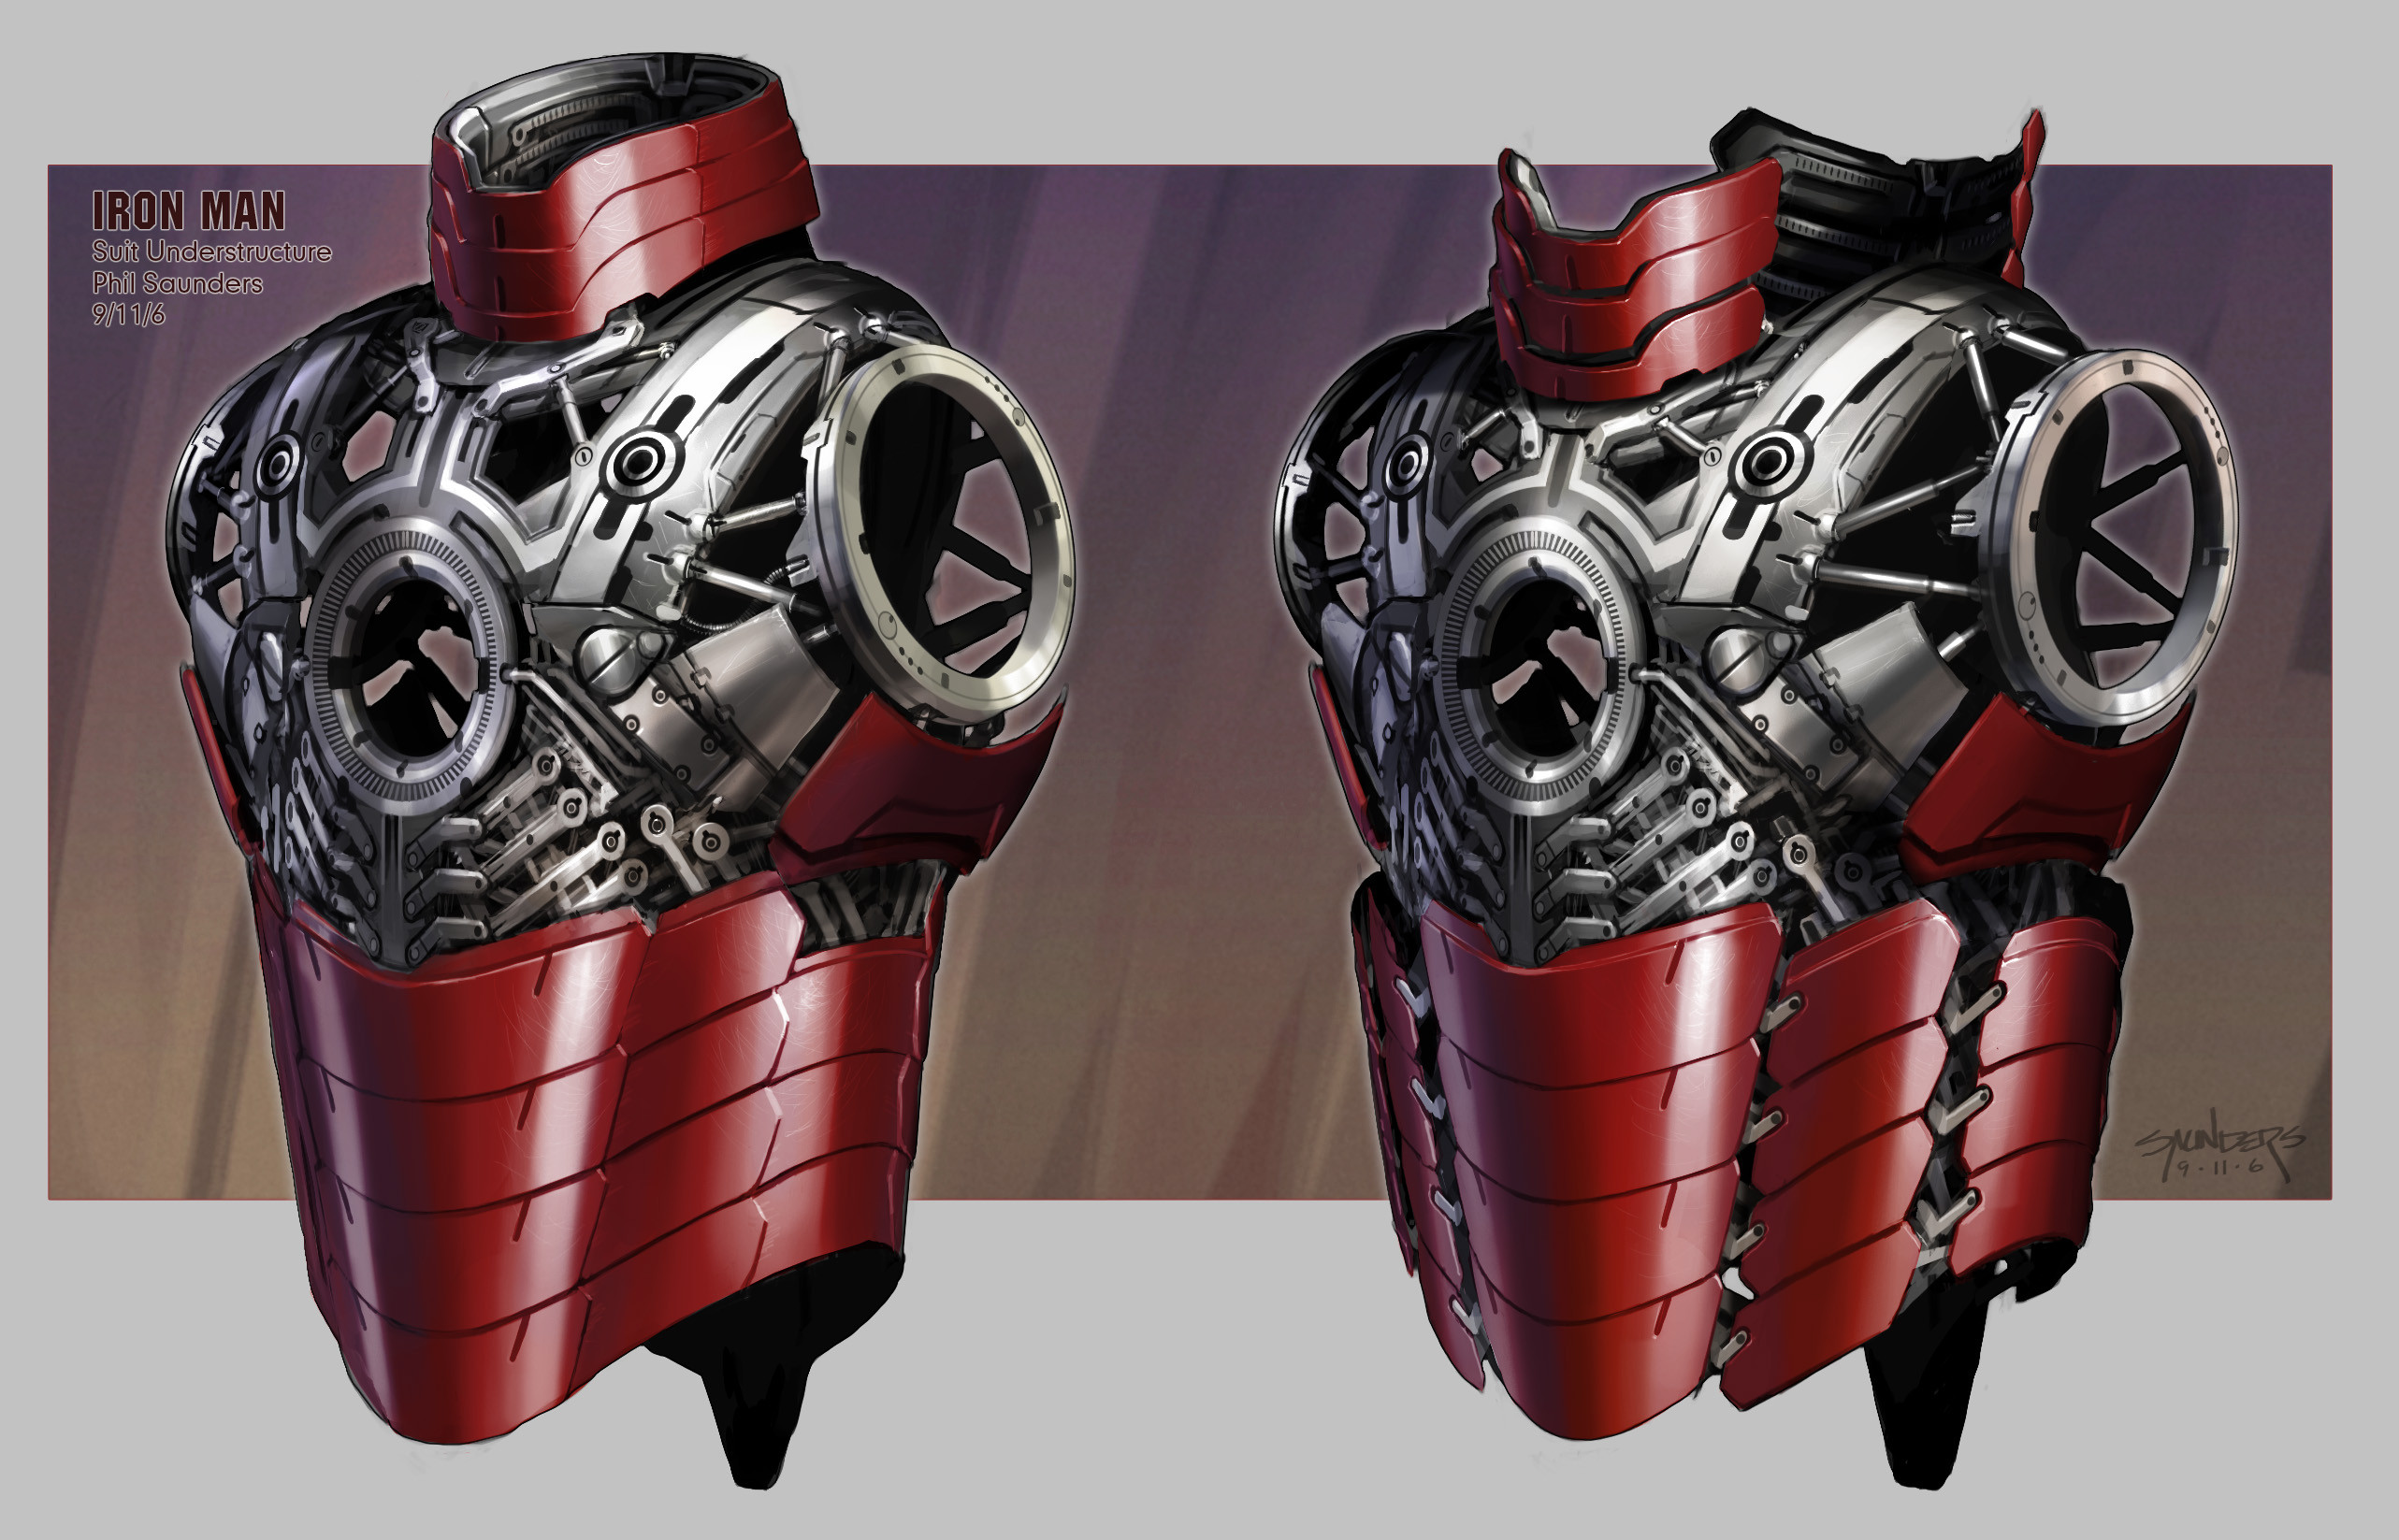 The torso section, which would expand like a watch band to allow Tony to slip into it as one piece.